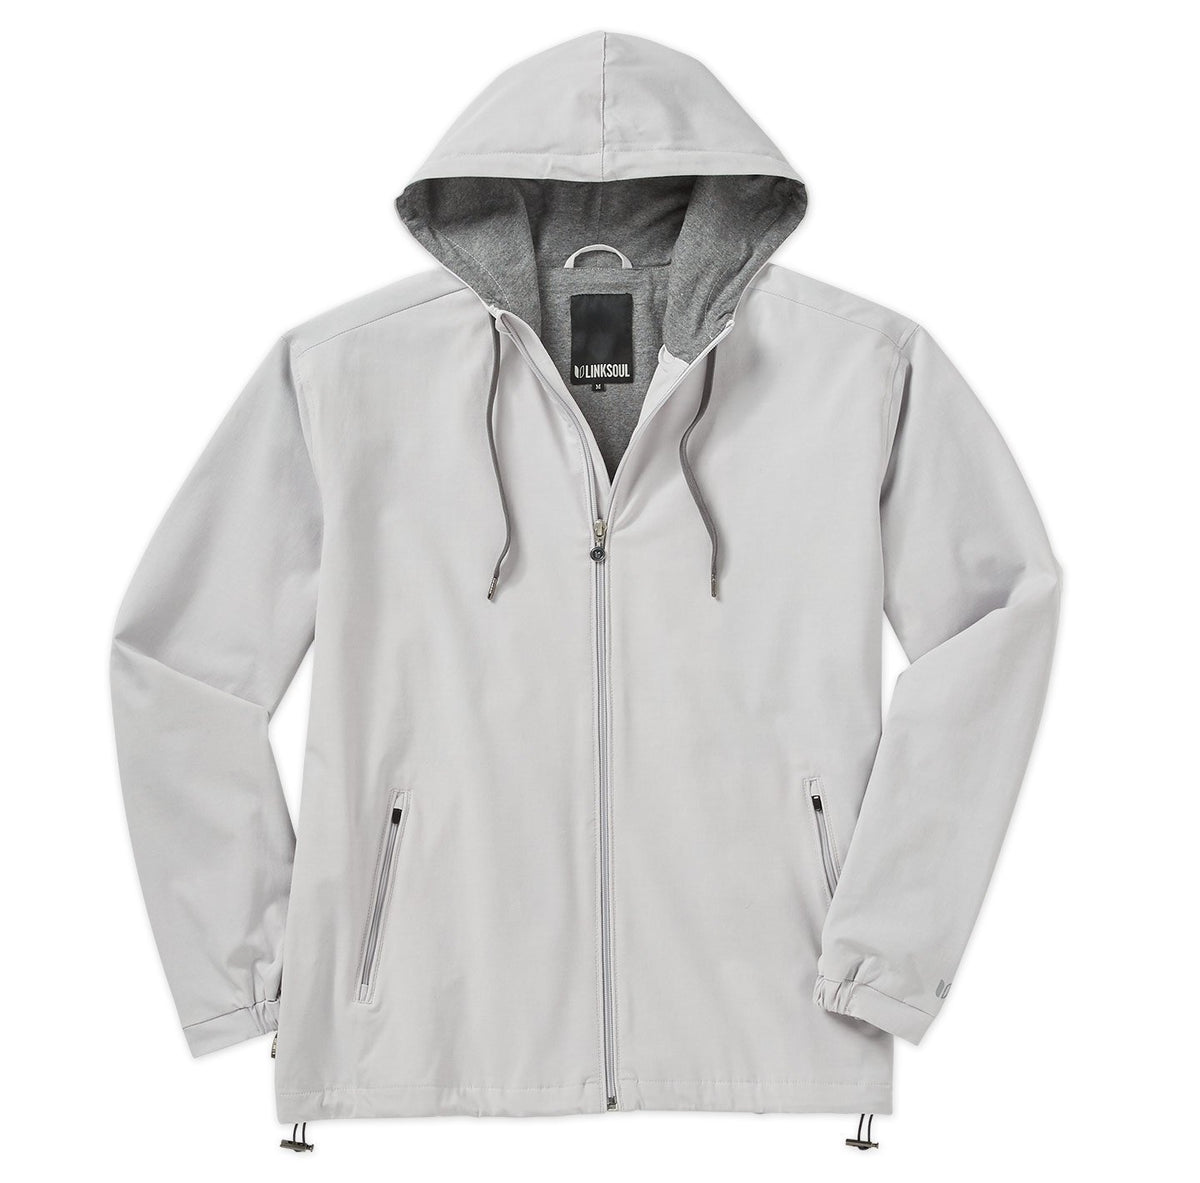 4-Way Stretch Hooded Jacket